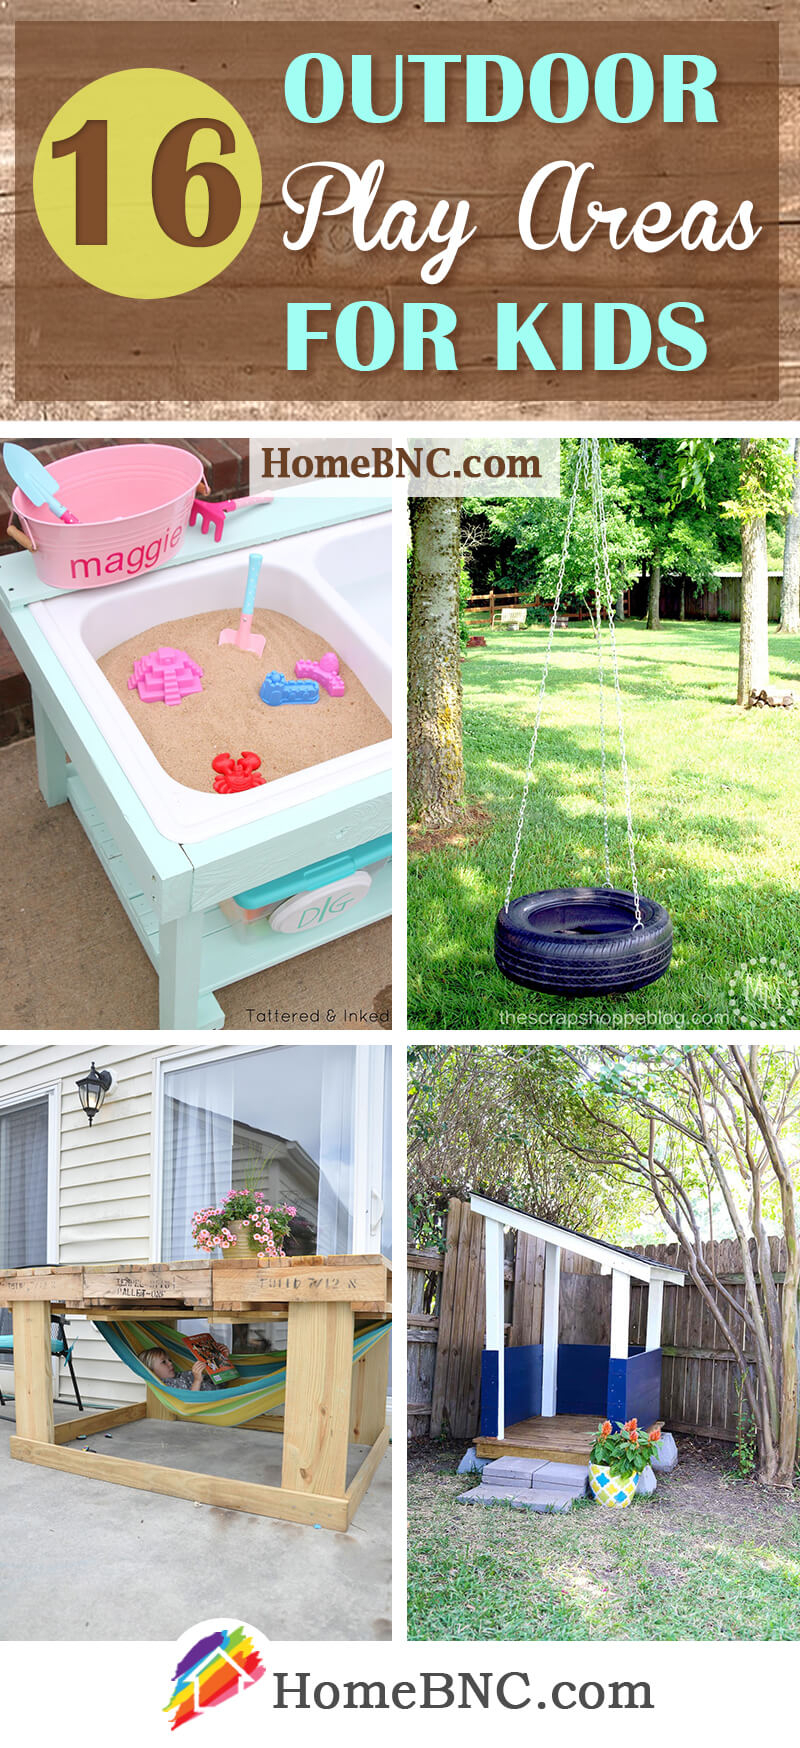 16 Best Outdoor Play Areas For Kids Ideas And Designs For 2019 throughout 13 Clever Ideas How to Make Backyard Play Ideas